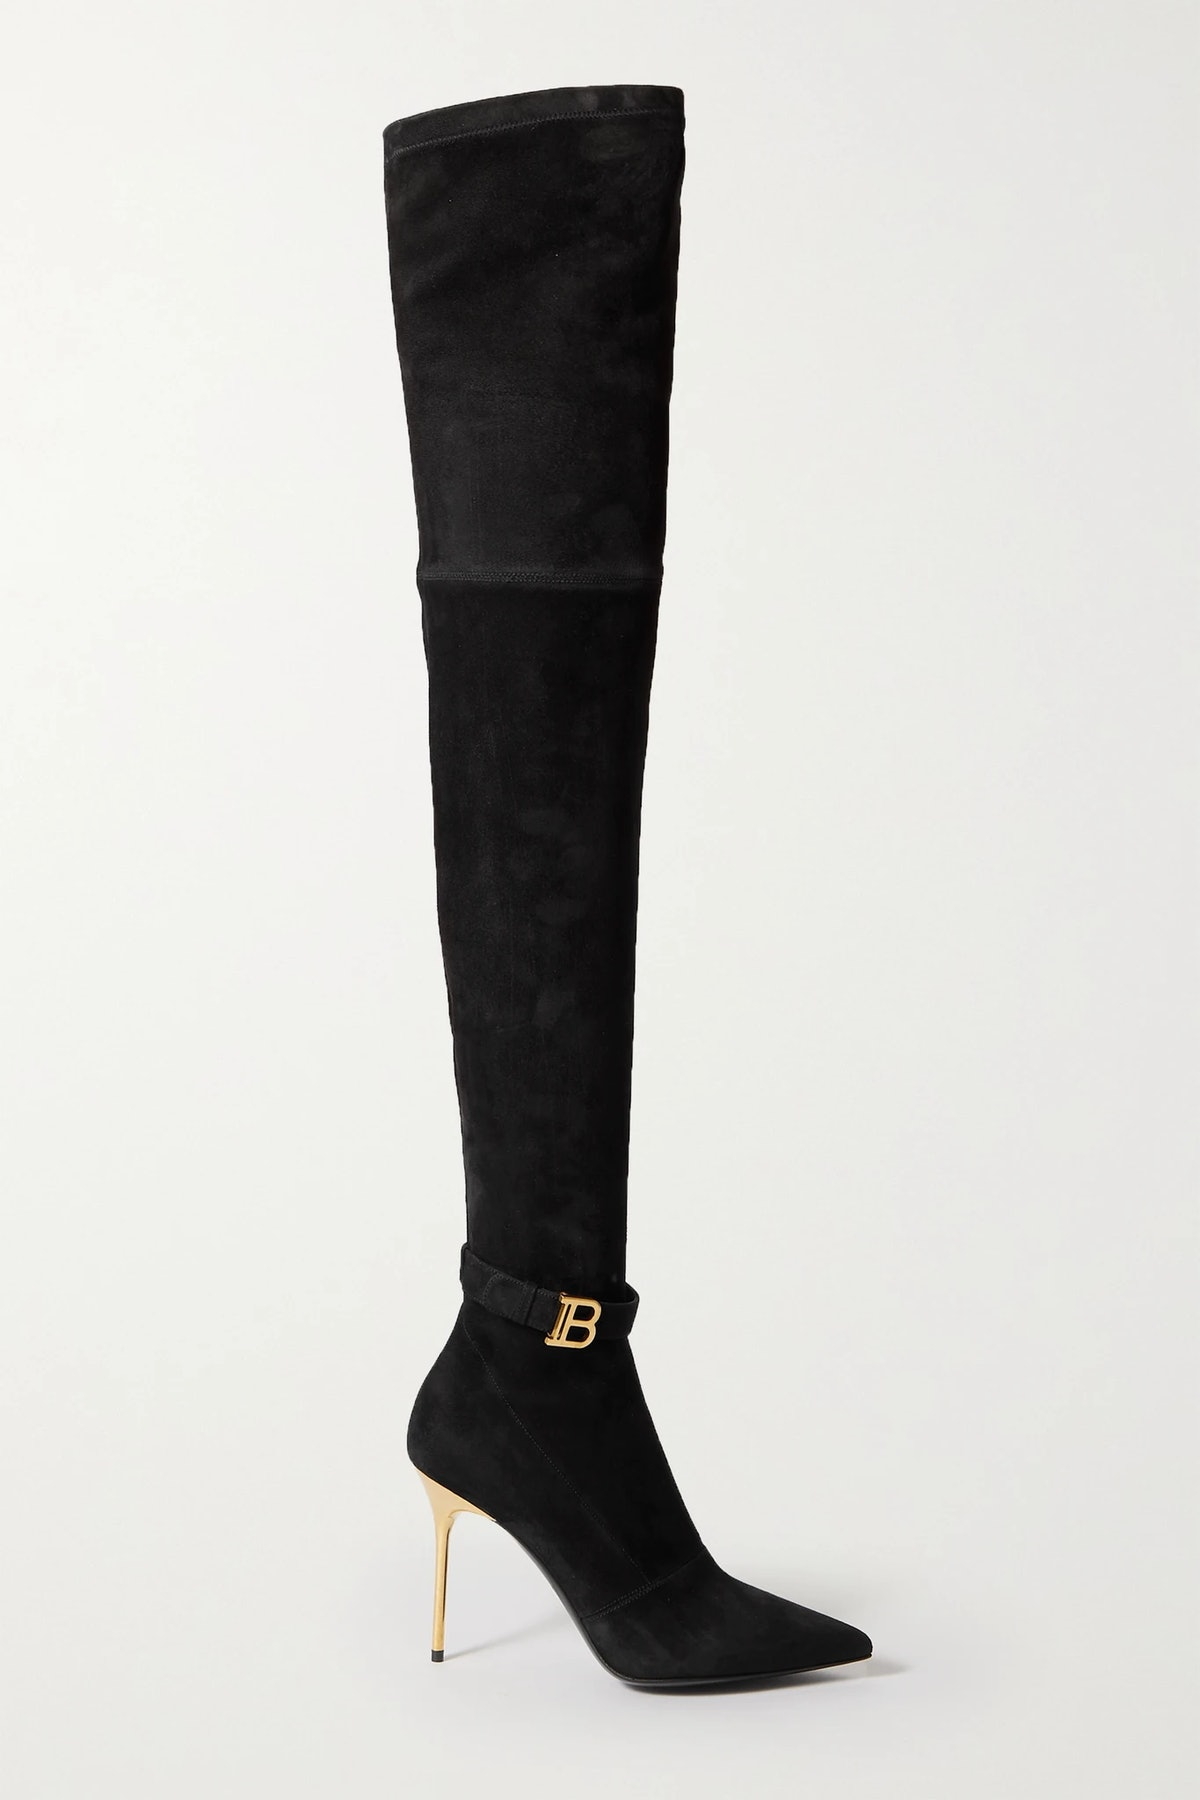 Balmain's black suede over-the-knee boots.